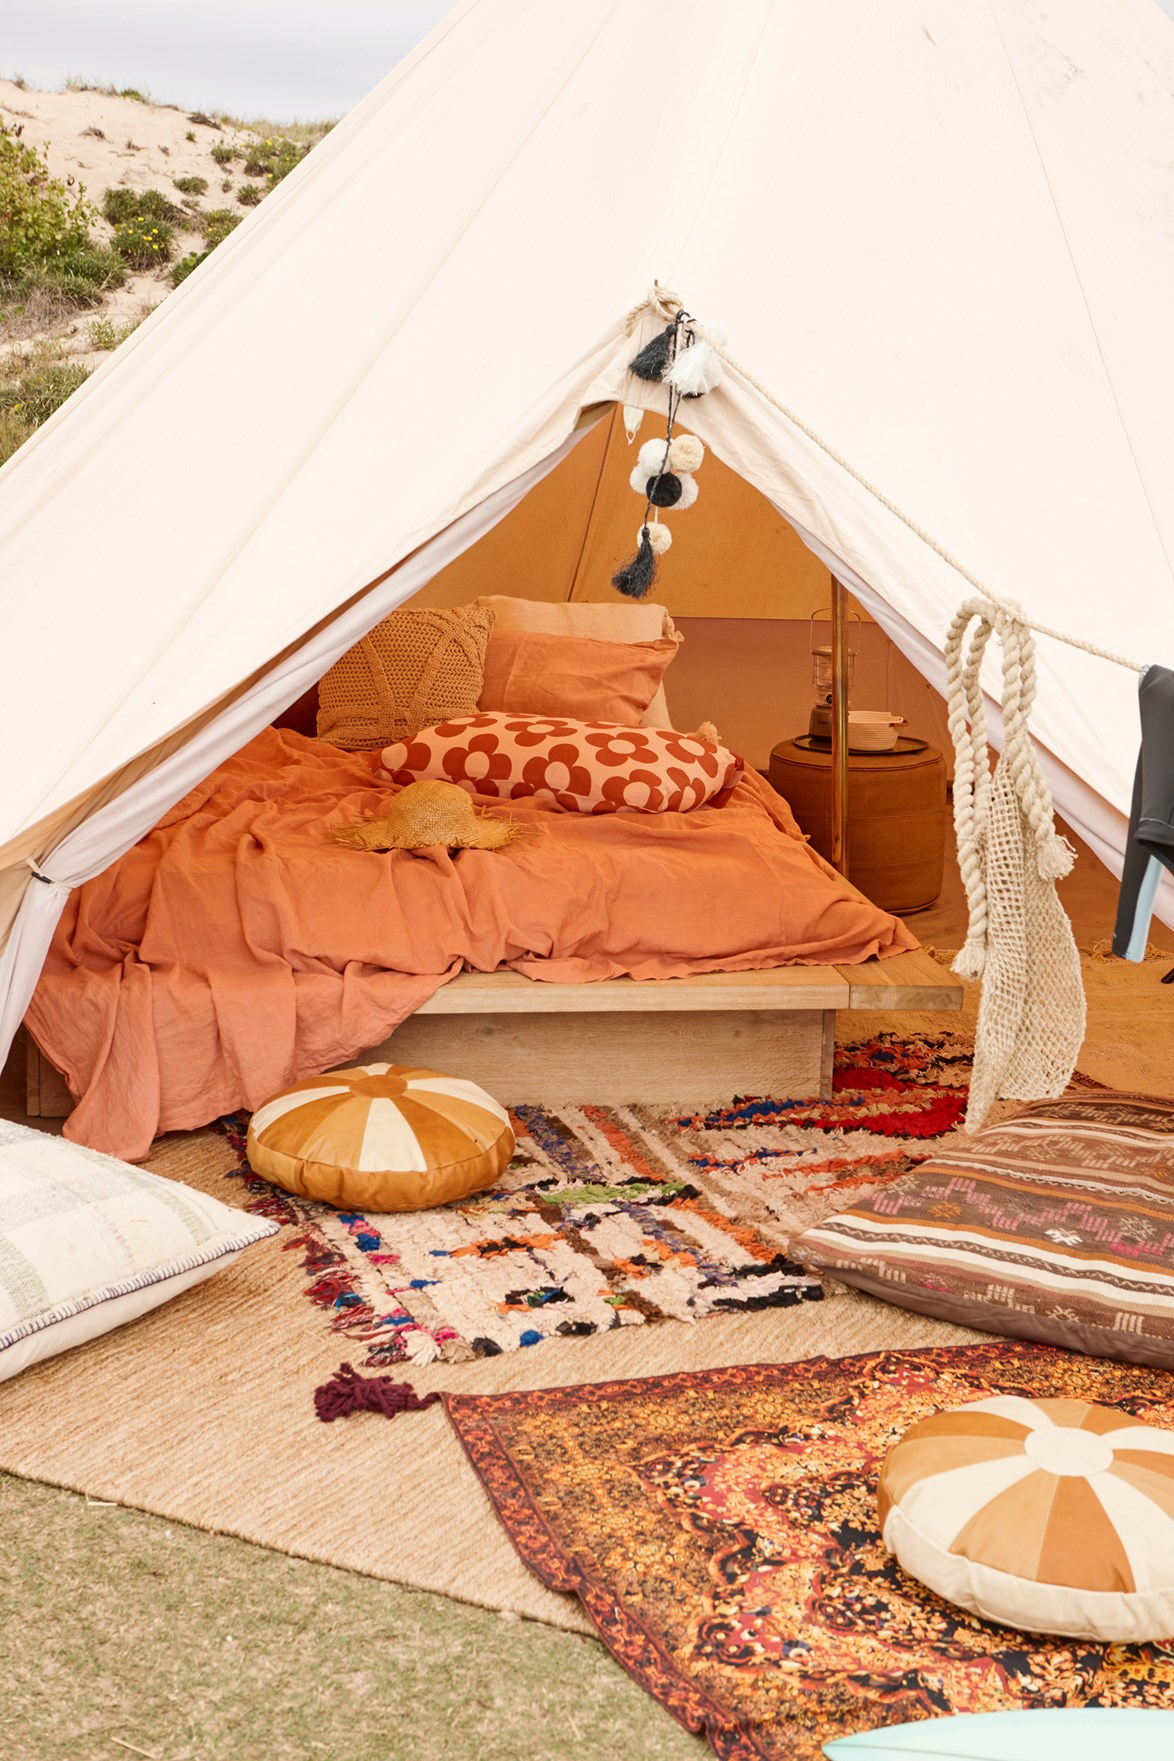 Colourful rugs and floor cushions will add colour and style while cosying up your glamping setup.